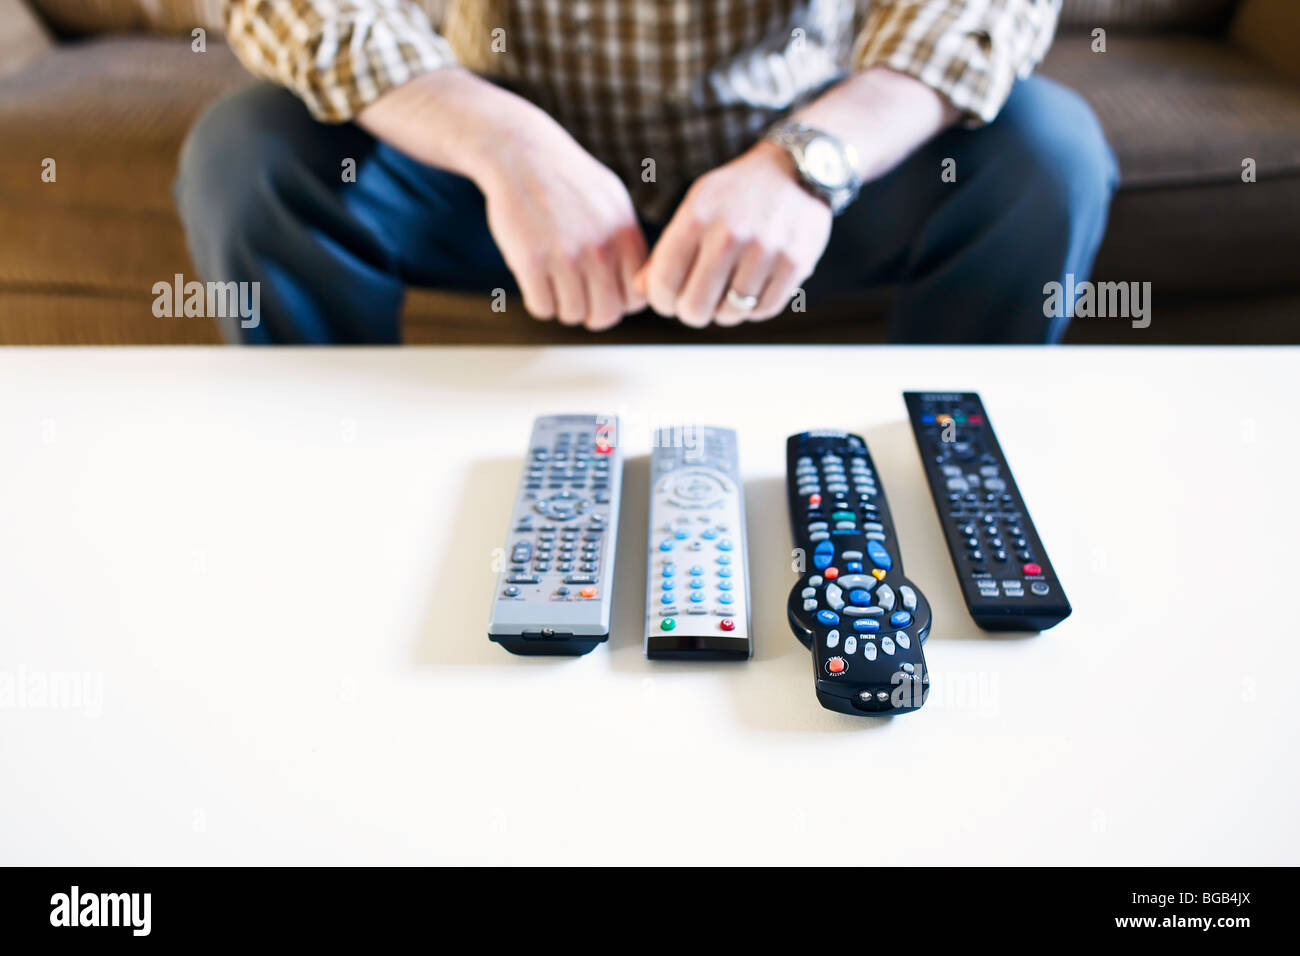 Man sitting on couch, with remote controls lined up on a coffee table. - Stock Image